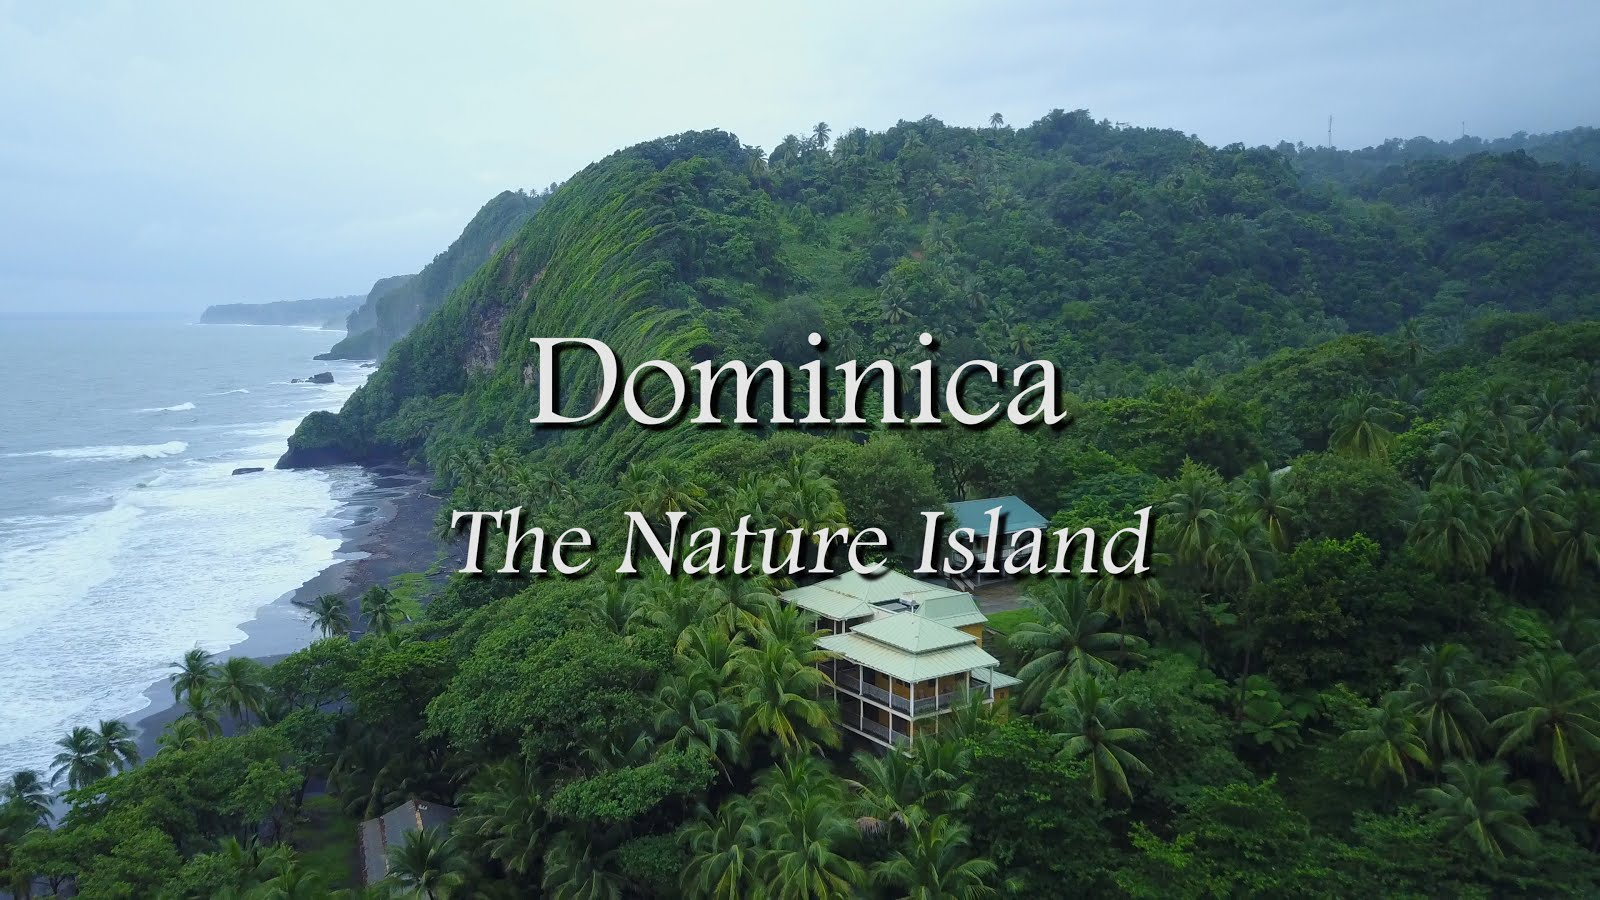 Dominica: The Nature Island (30 min)